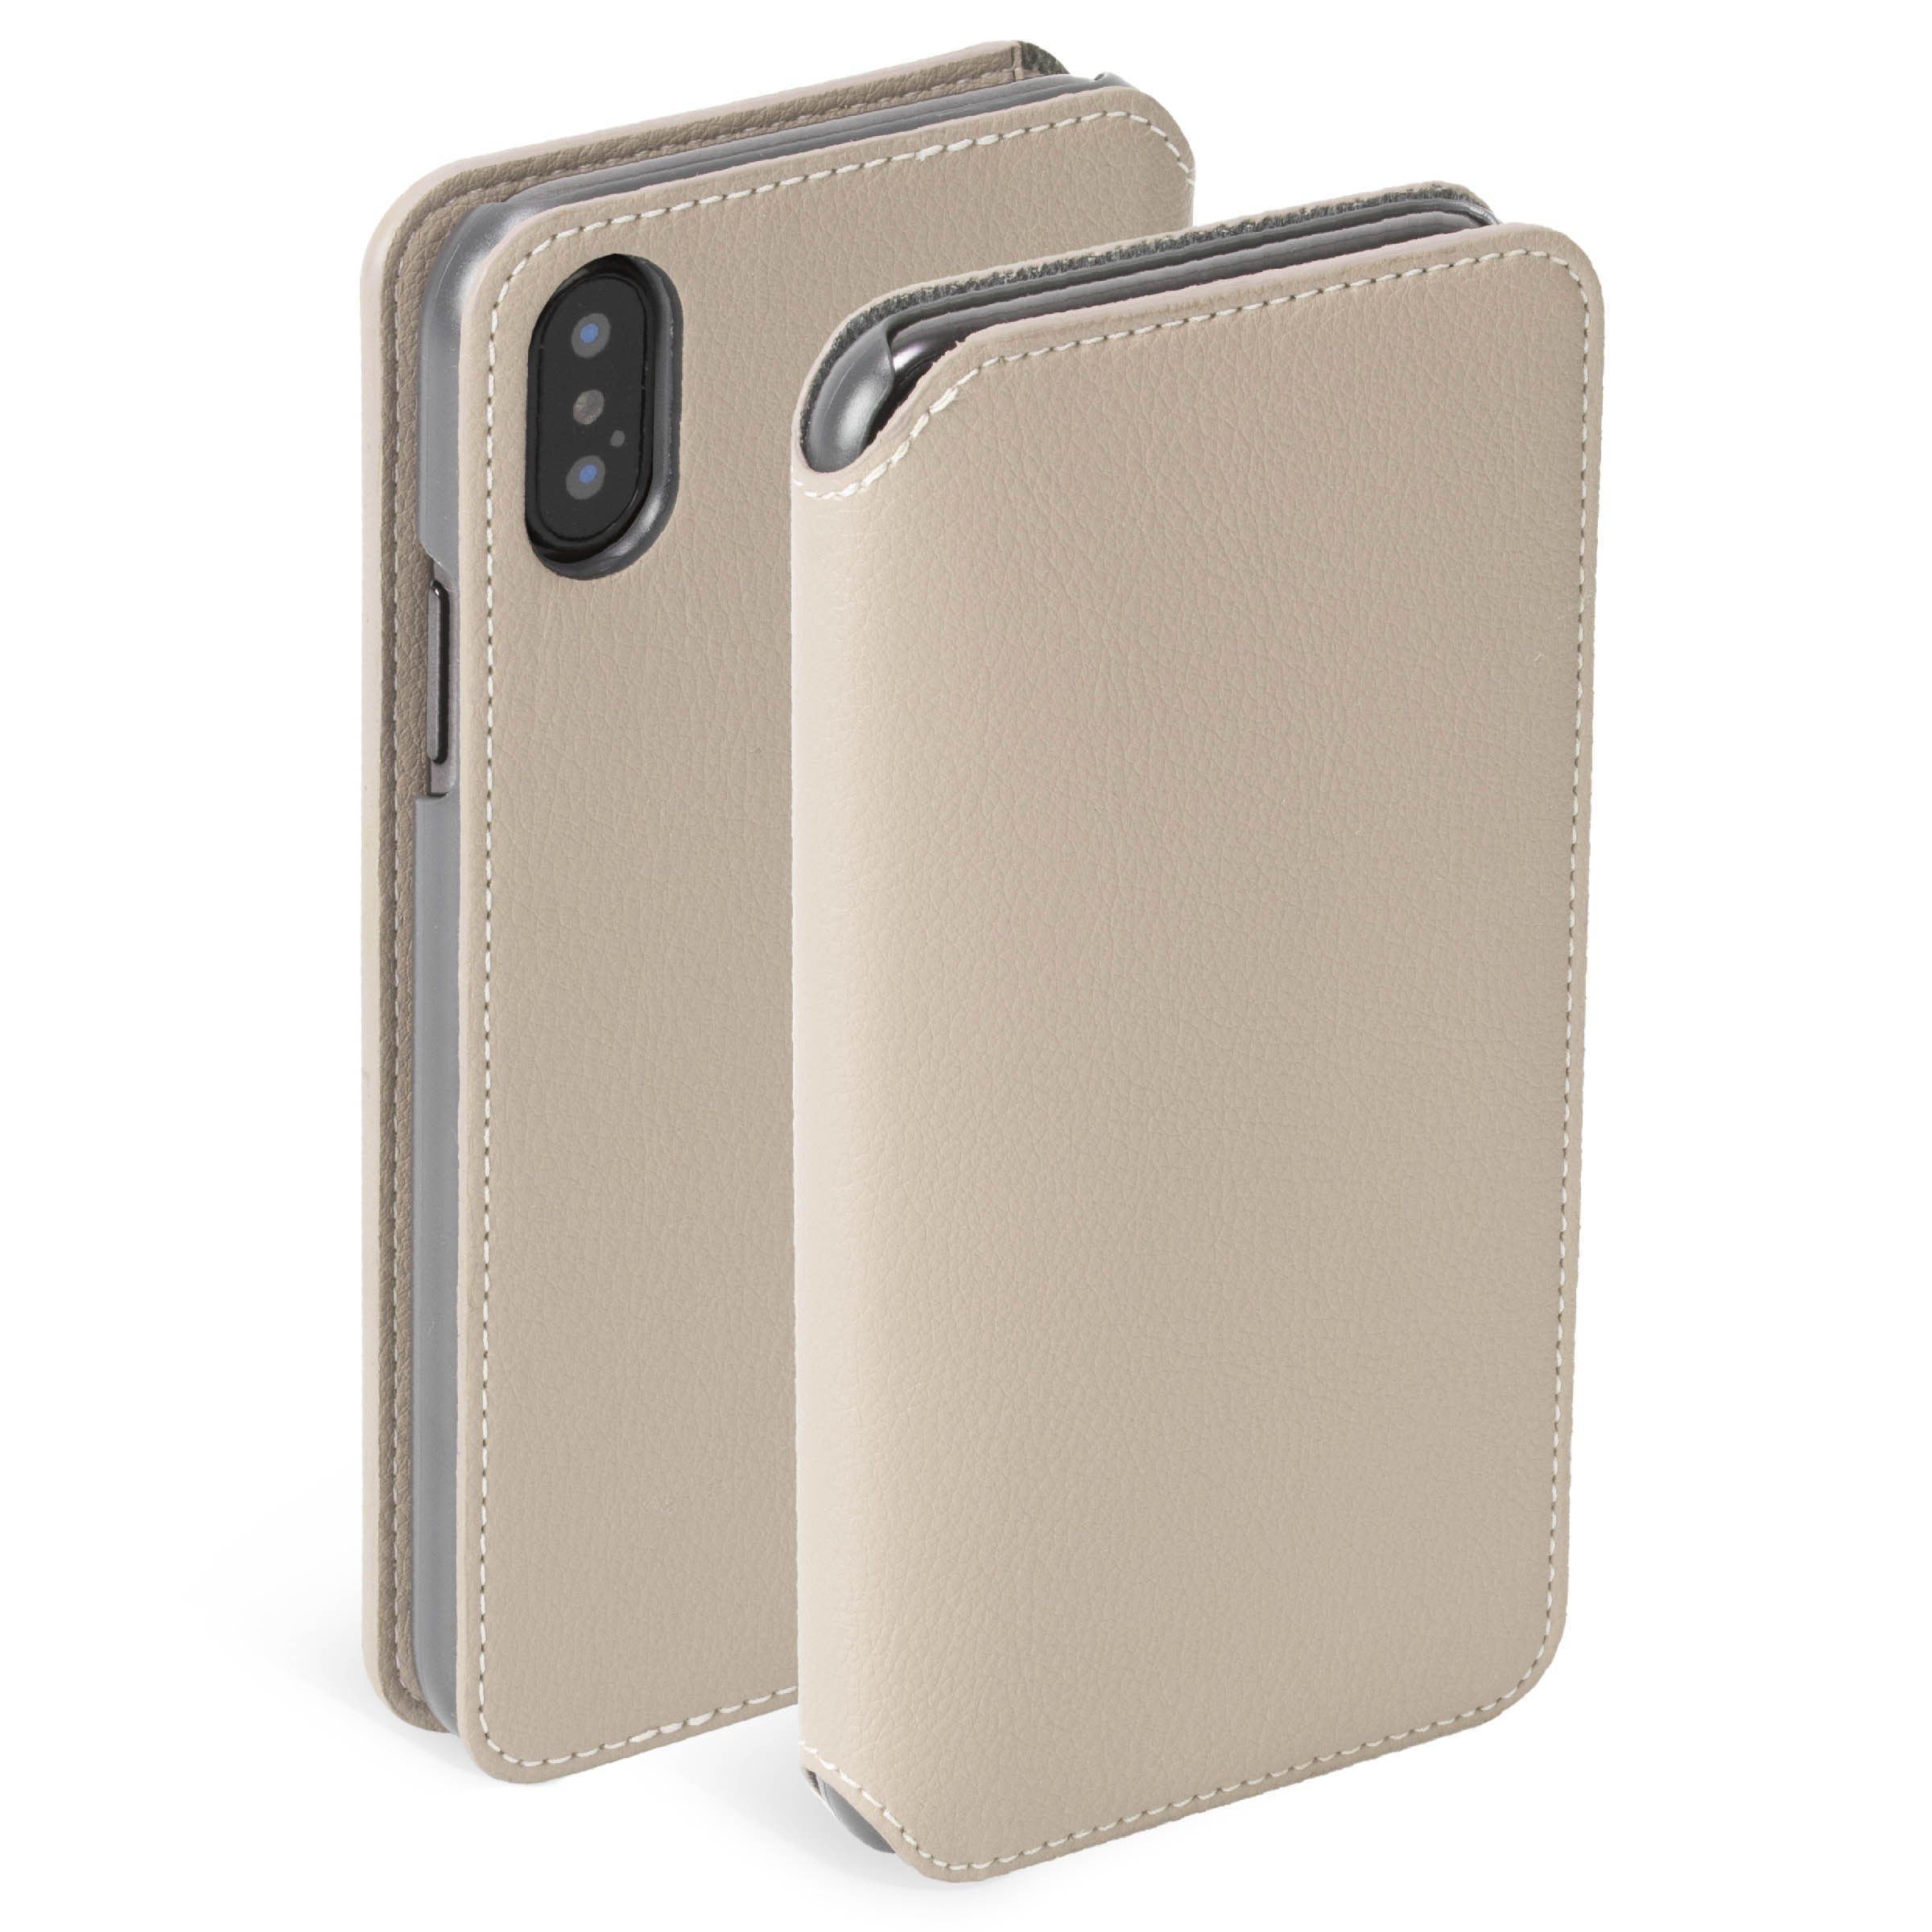 IPHONE XS MAX, PIXBO 4 CARD SLIMWALLET